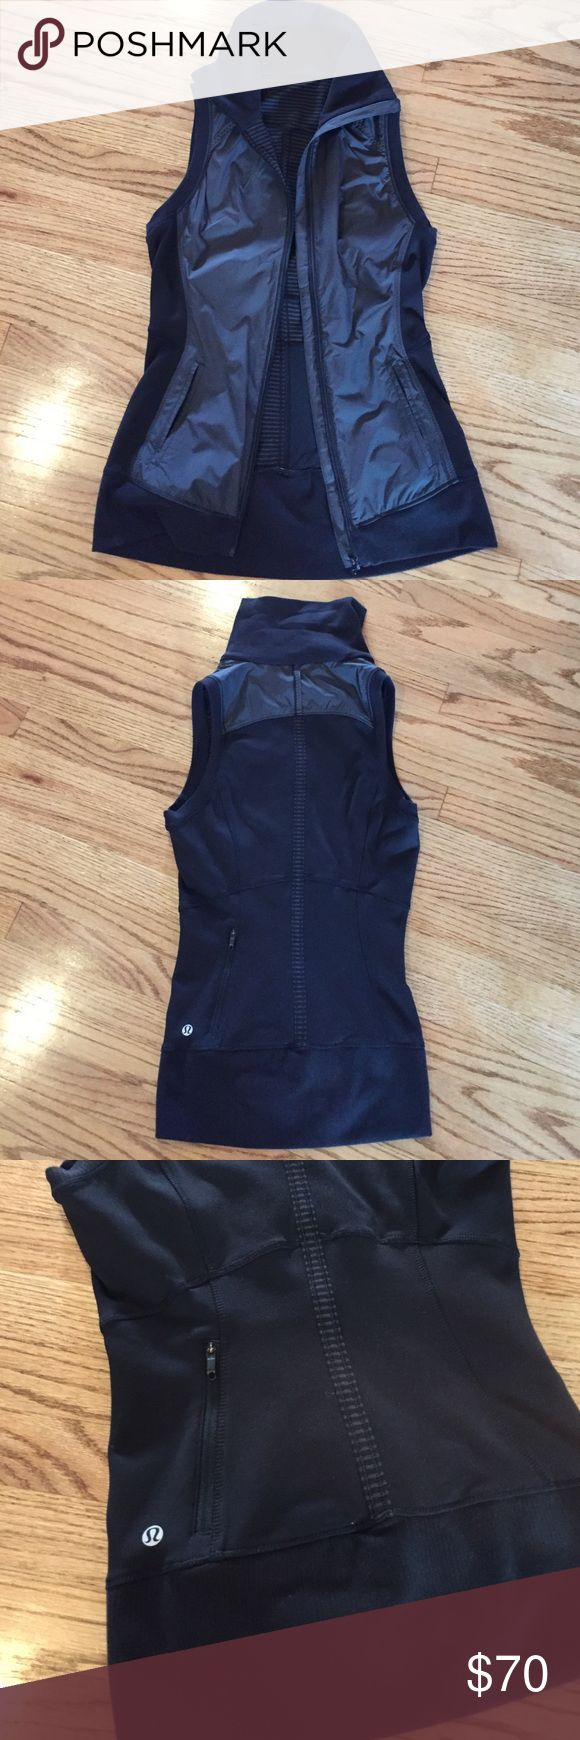 Lululemon vest! Awesome warm vest by lululemon. It's one of those items that you love so much but just sits there because I live in California where our weather is never cold enough to wear it. Thinking of sending it out to someone who will wear it. Perfect condition, no flaws. I think I wore it twice. Back pocket with zipper, inside back pocket, and two pockets on the sides. High neck to zip up and keep you warm. But thin enough to layer a coat over it. Front is nylon material. Soft, lovely…